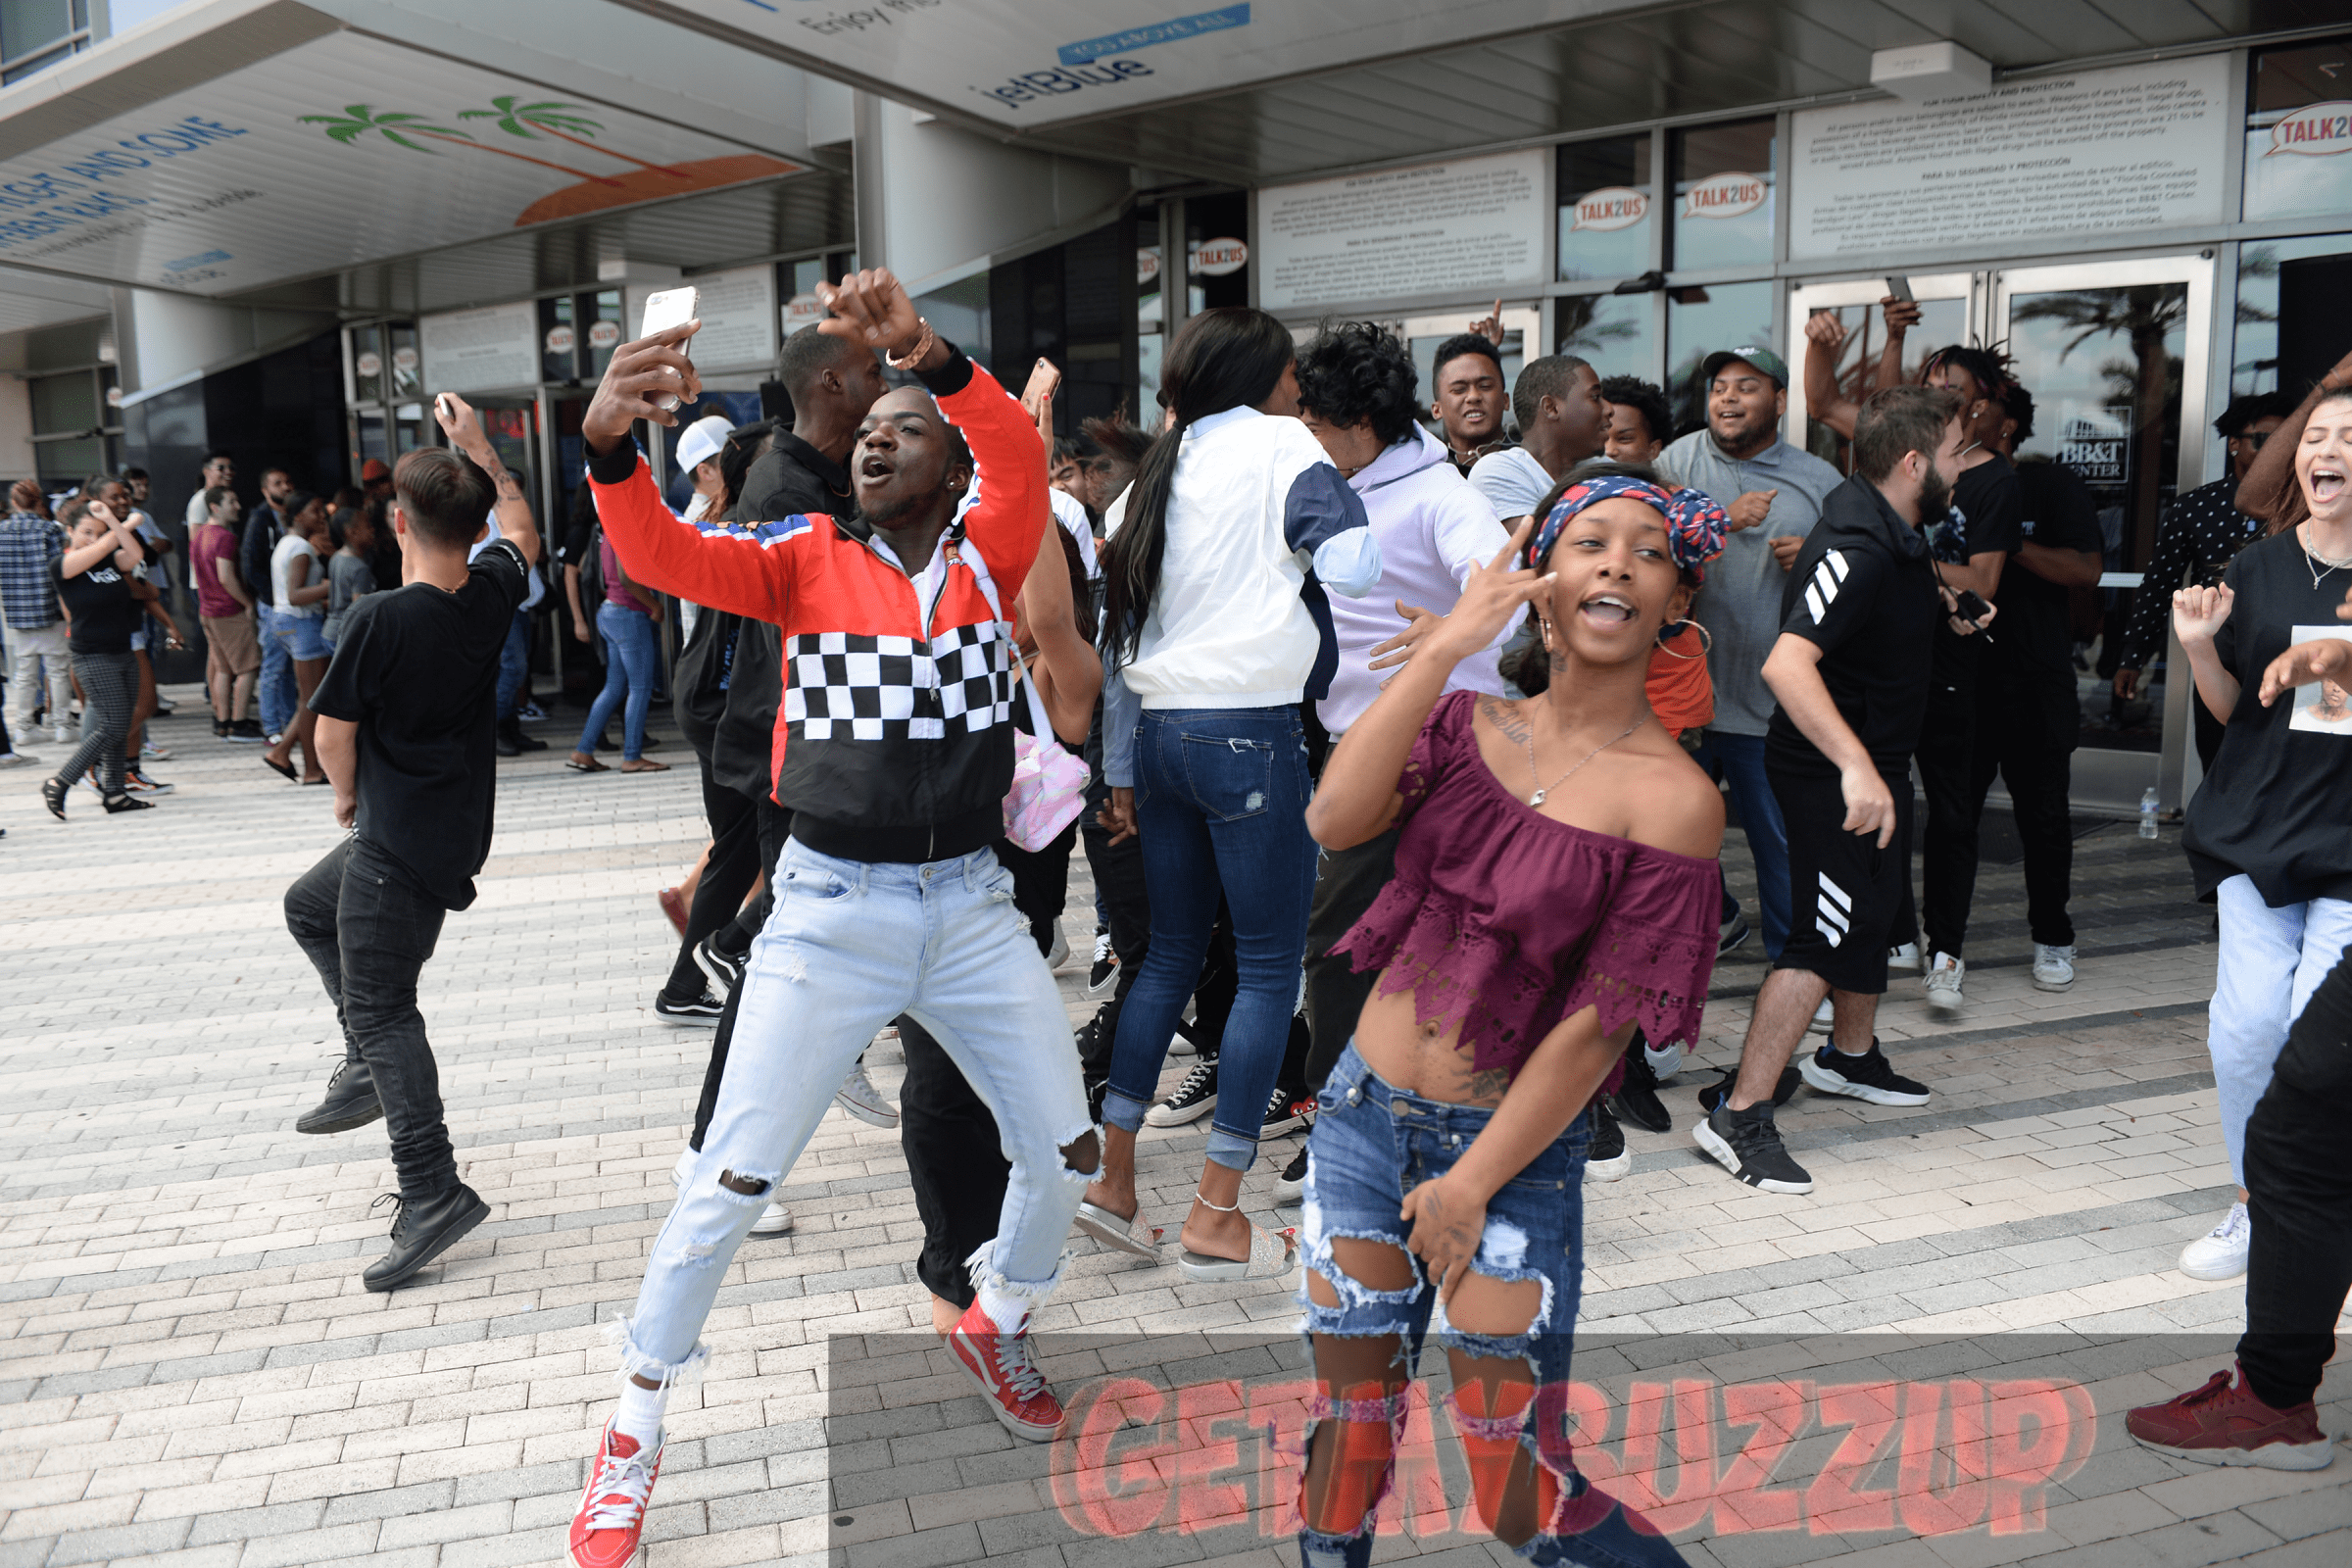 XXXTENTACION'S LIFE, INFLUENCE, & IMPACT CELEBRATED AT PUBLIC VIEWING AND FAN MEMORIAL [PHOTOS]